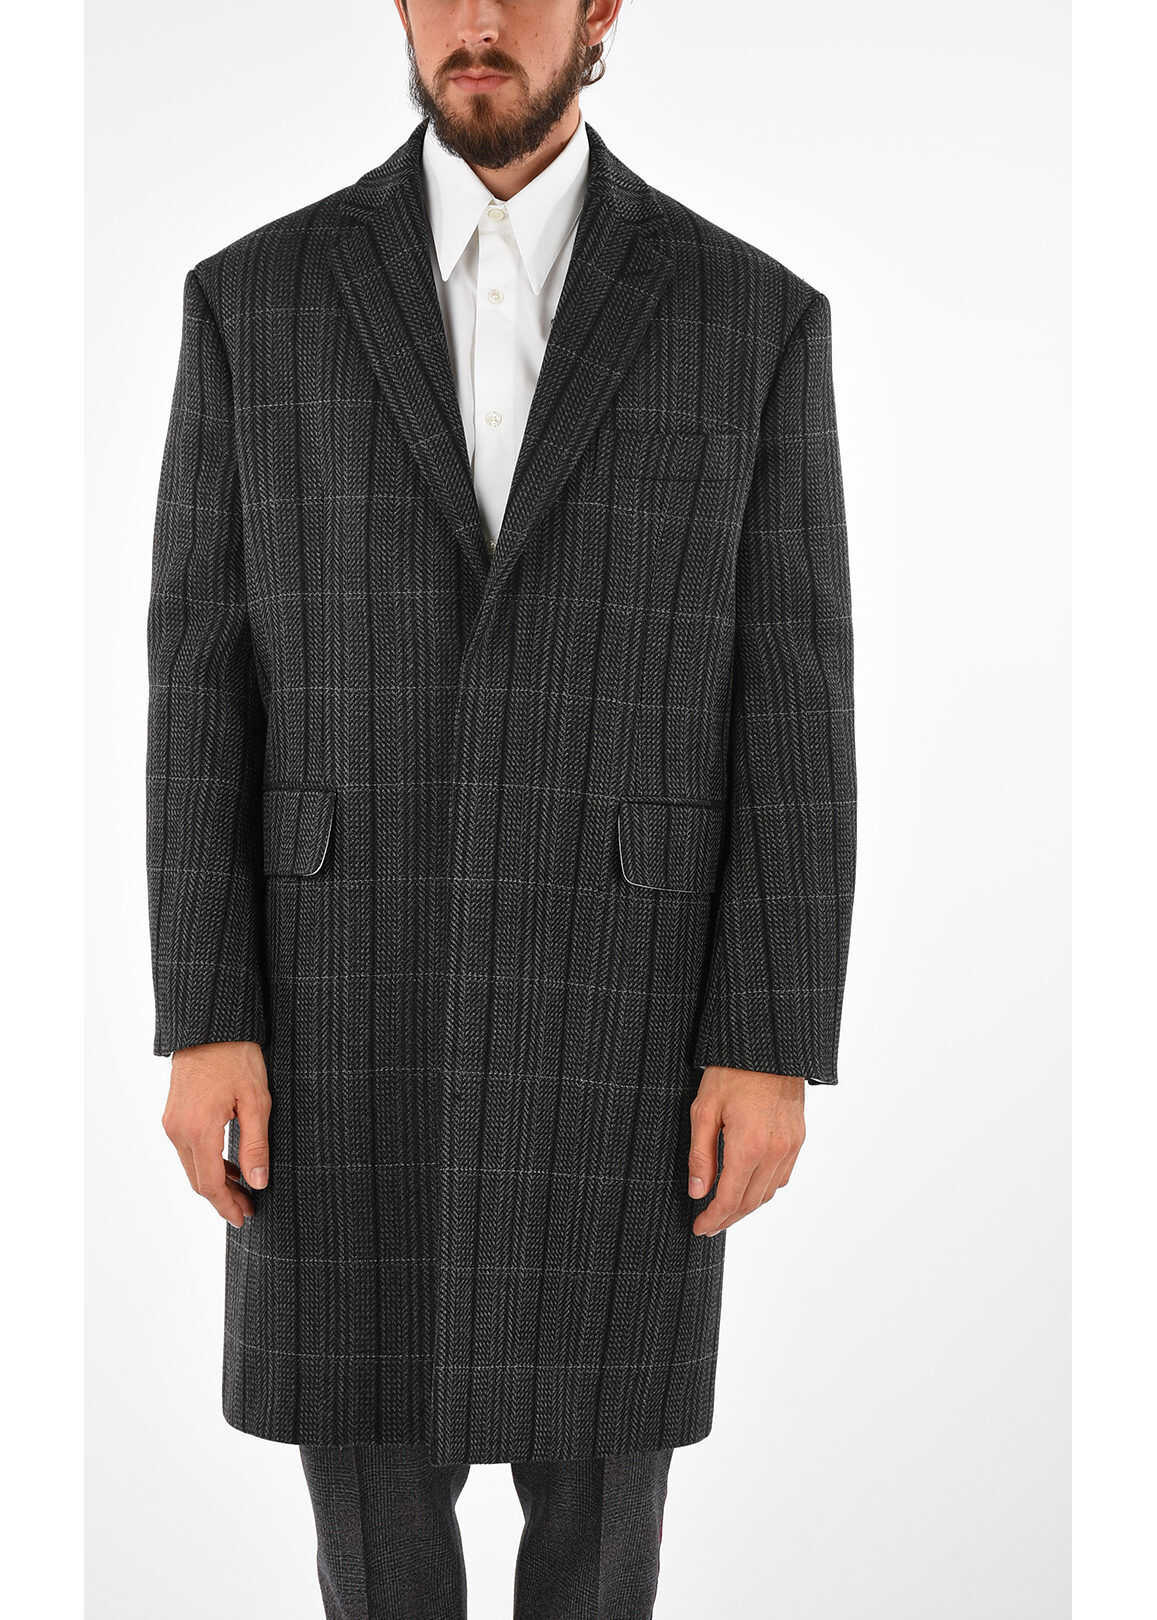 Calvin Klein 205W39NYC Wool Coat DARK GRAY